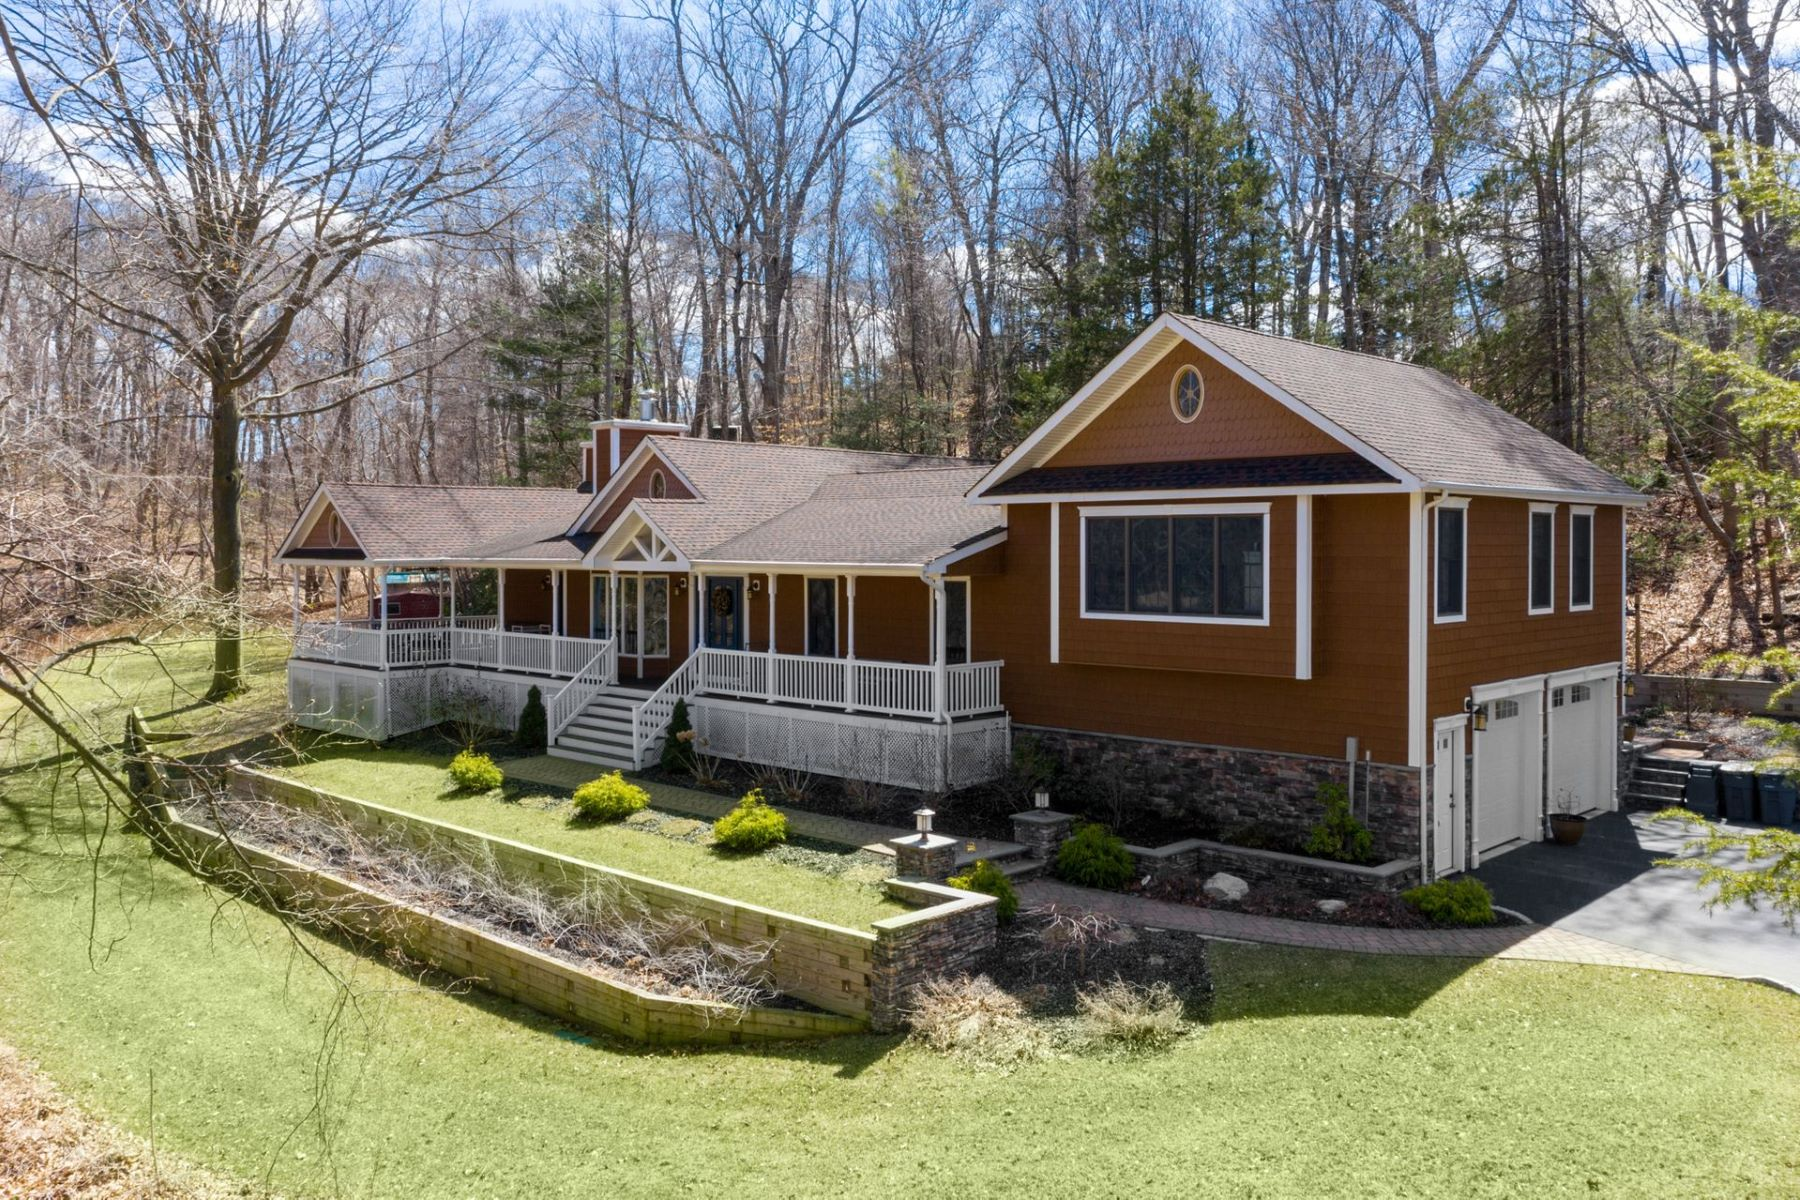 Single Family Homes for Active at Smithtown 149 Oakside Dr Smithtown, New York 11787 United States